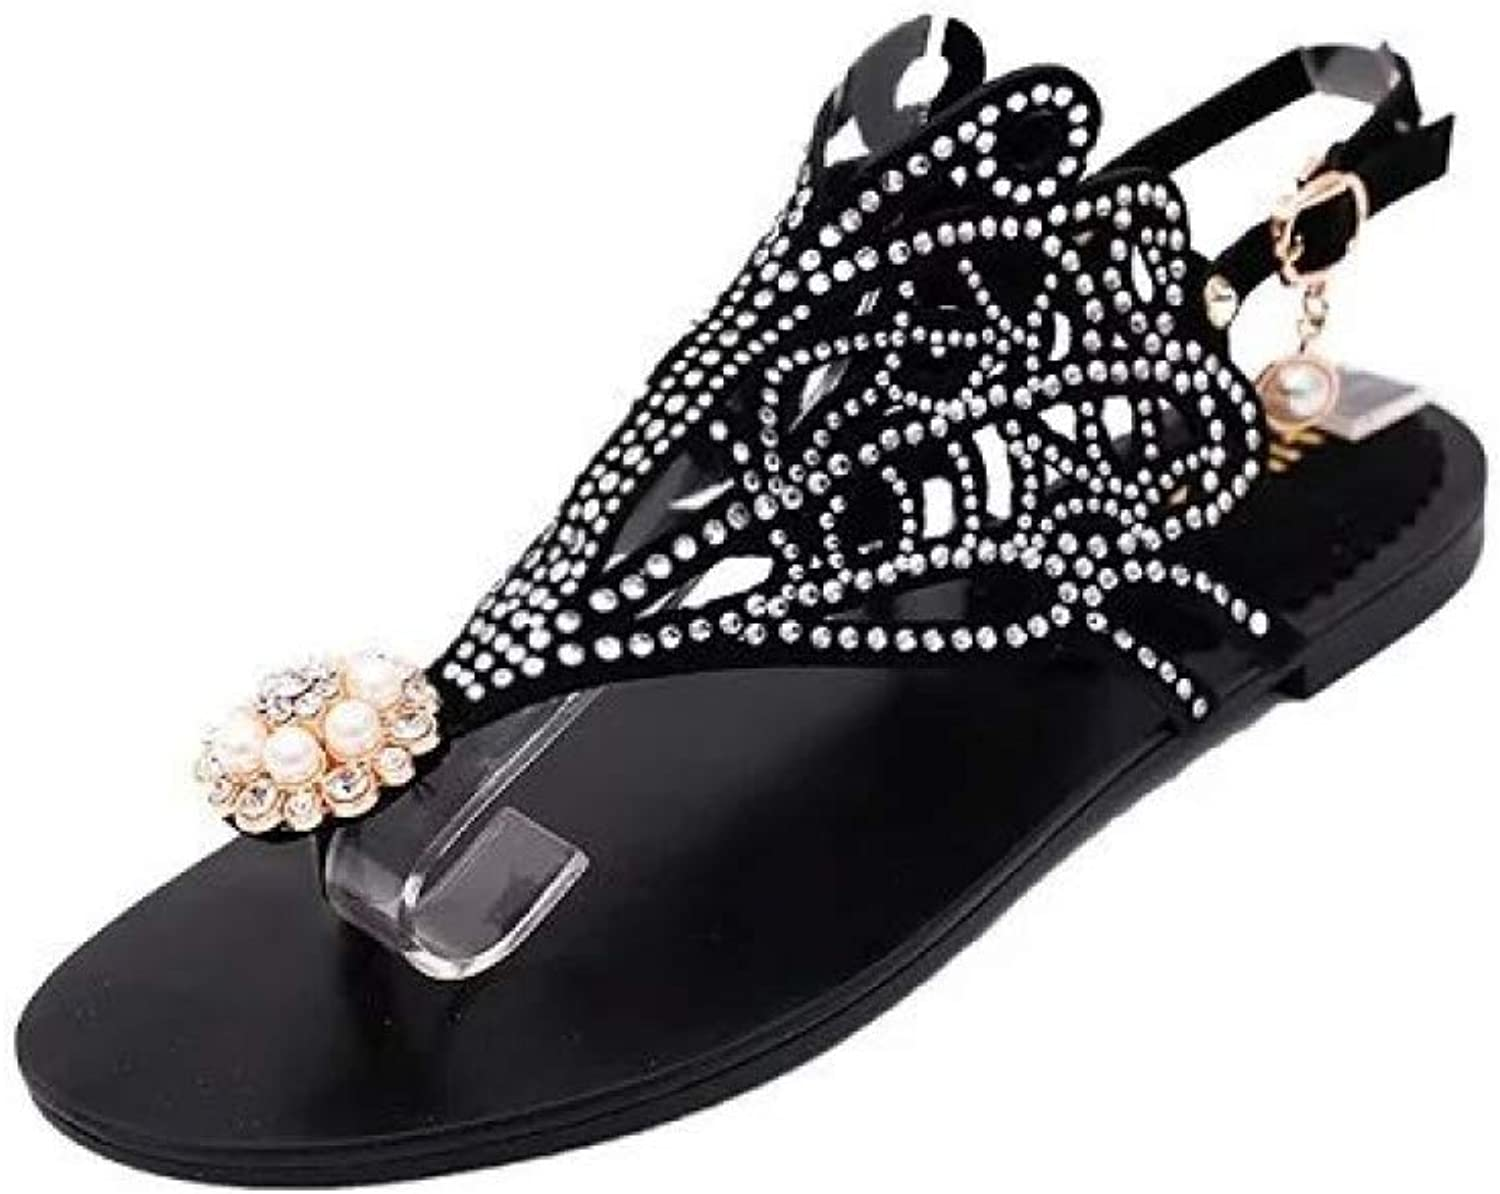 Btrada Women Flat Sandals Summer Vintage Style Rhinestones Clip Toe Ankle Strap Fashion Beach shoes